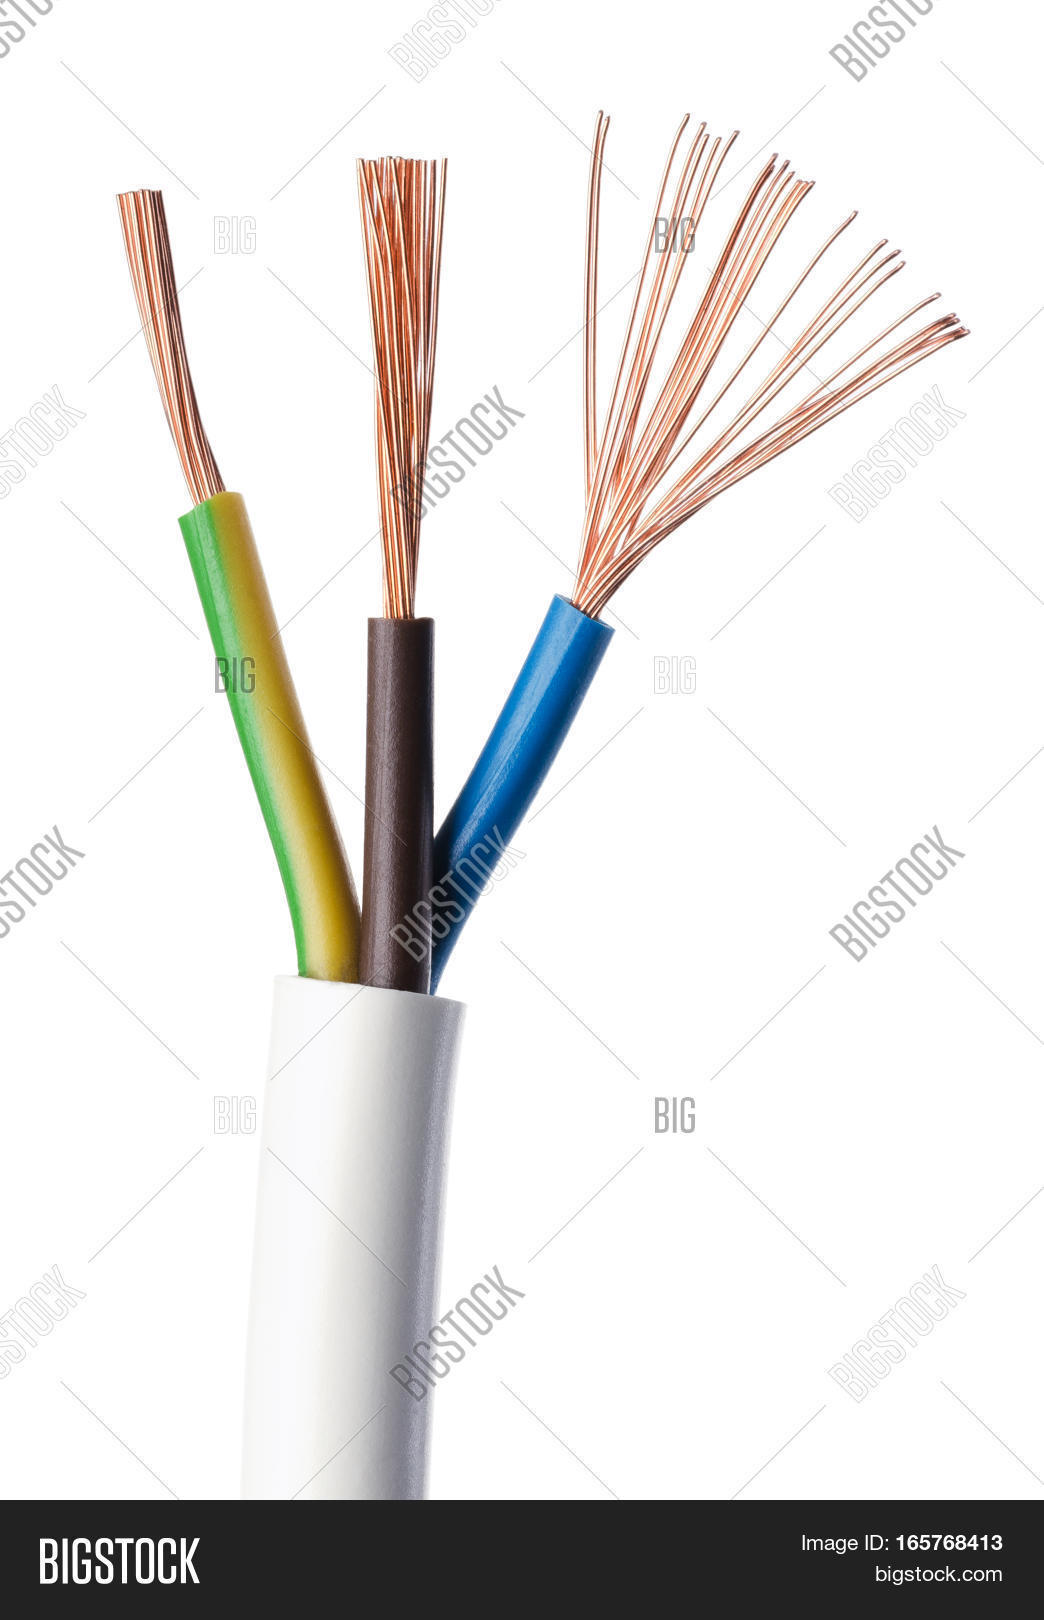 Electrical Power Cable Image & Photo (Free Trial) | Bigstock